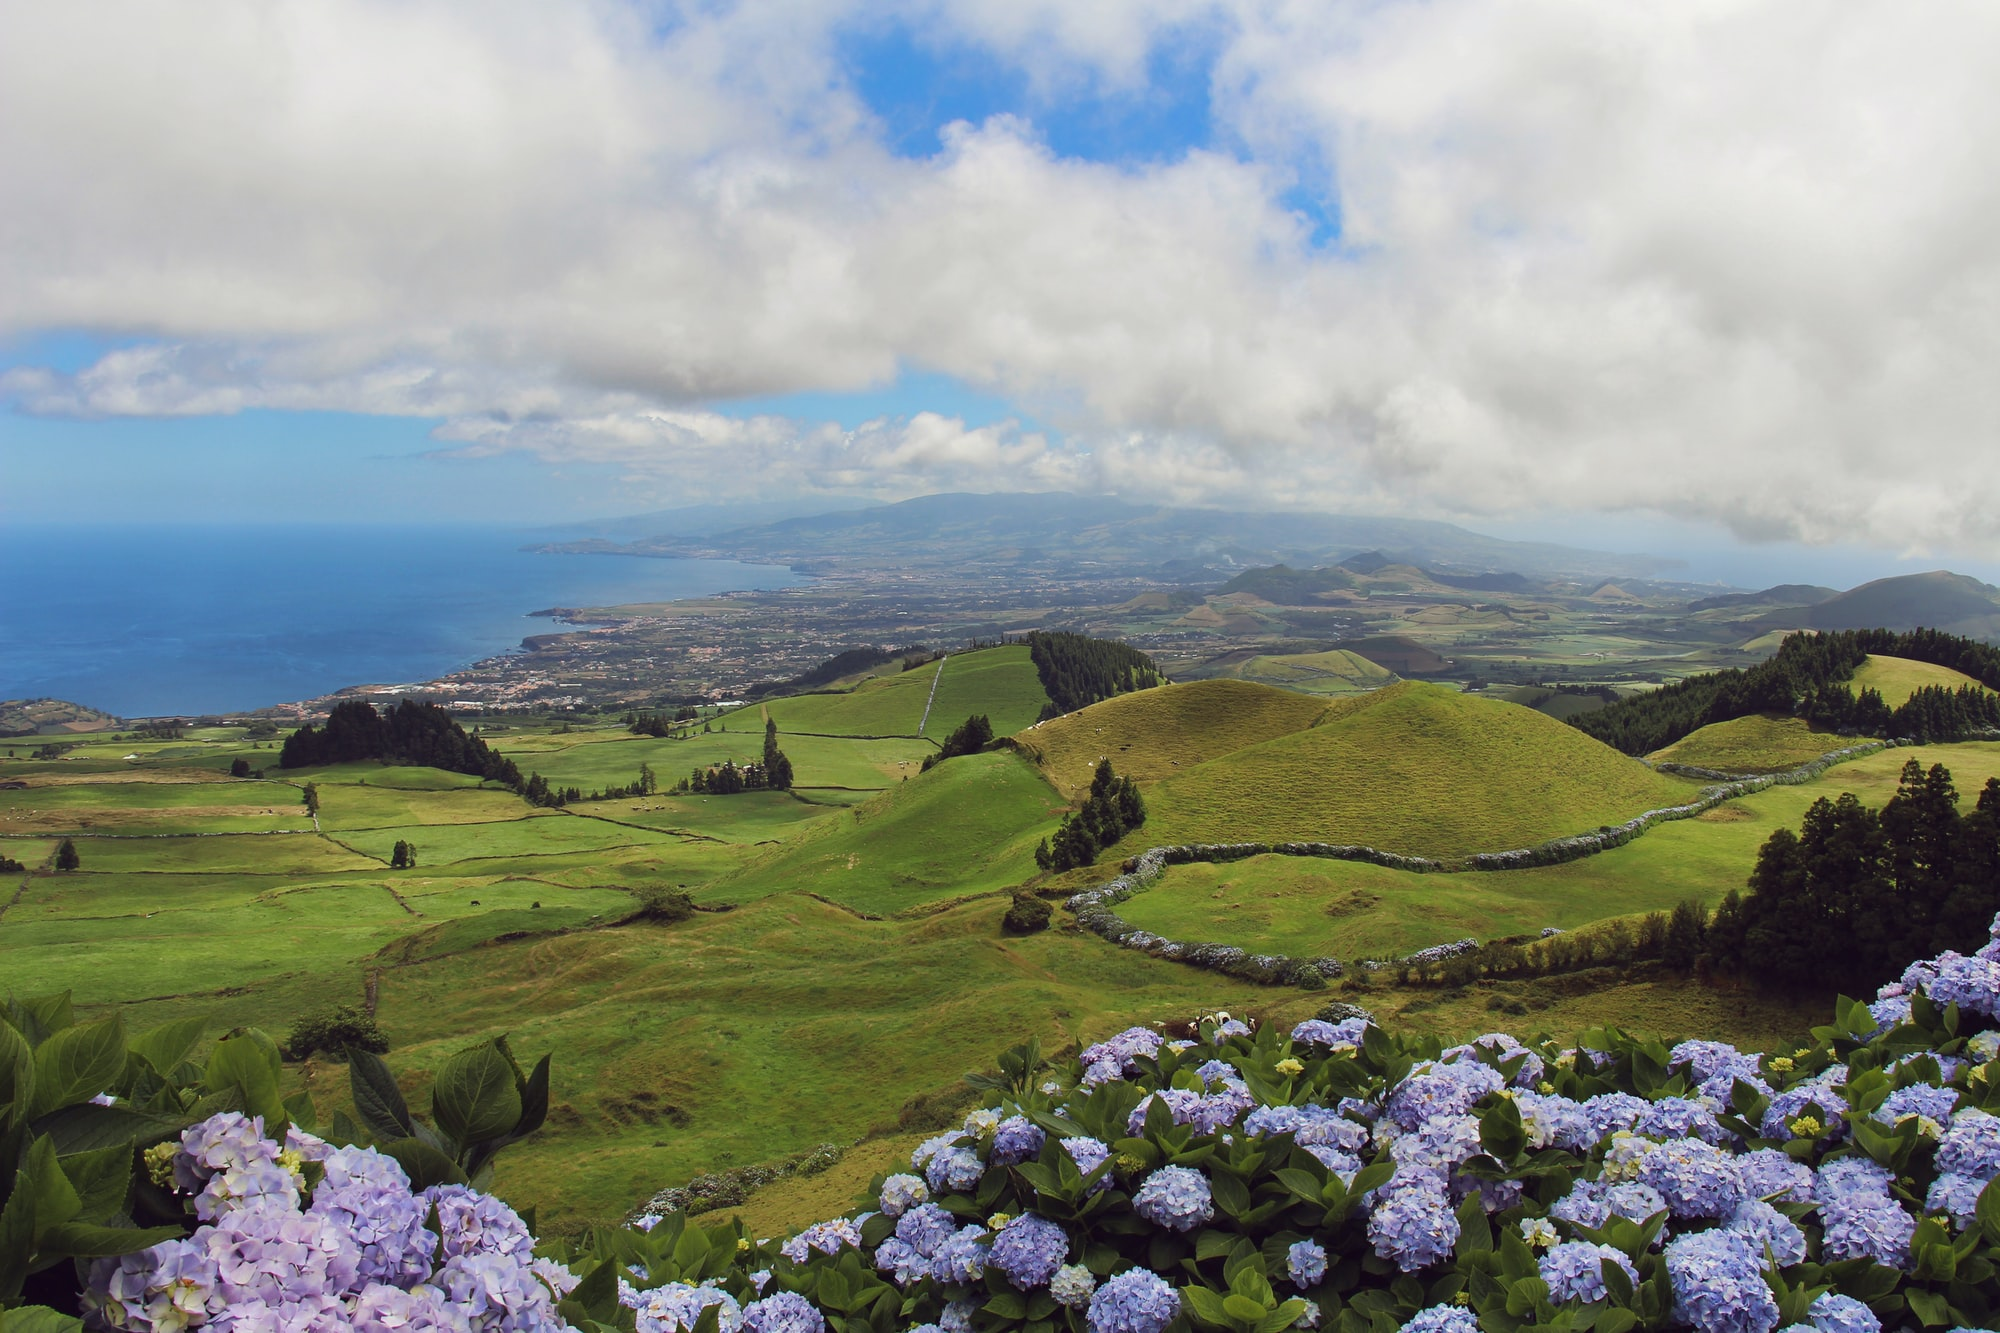 When is the best time to visit the Azores?